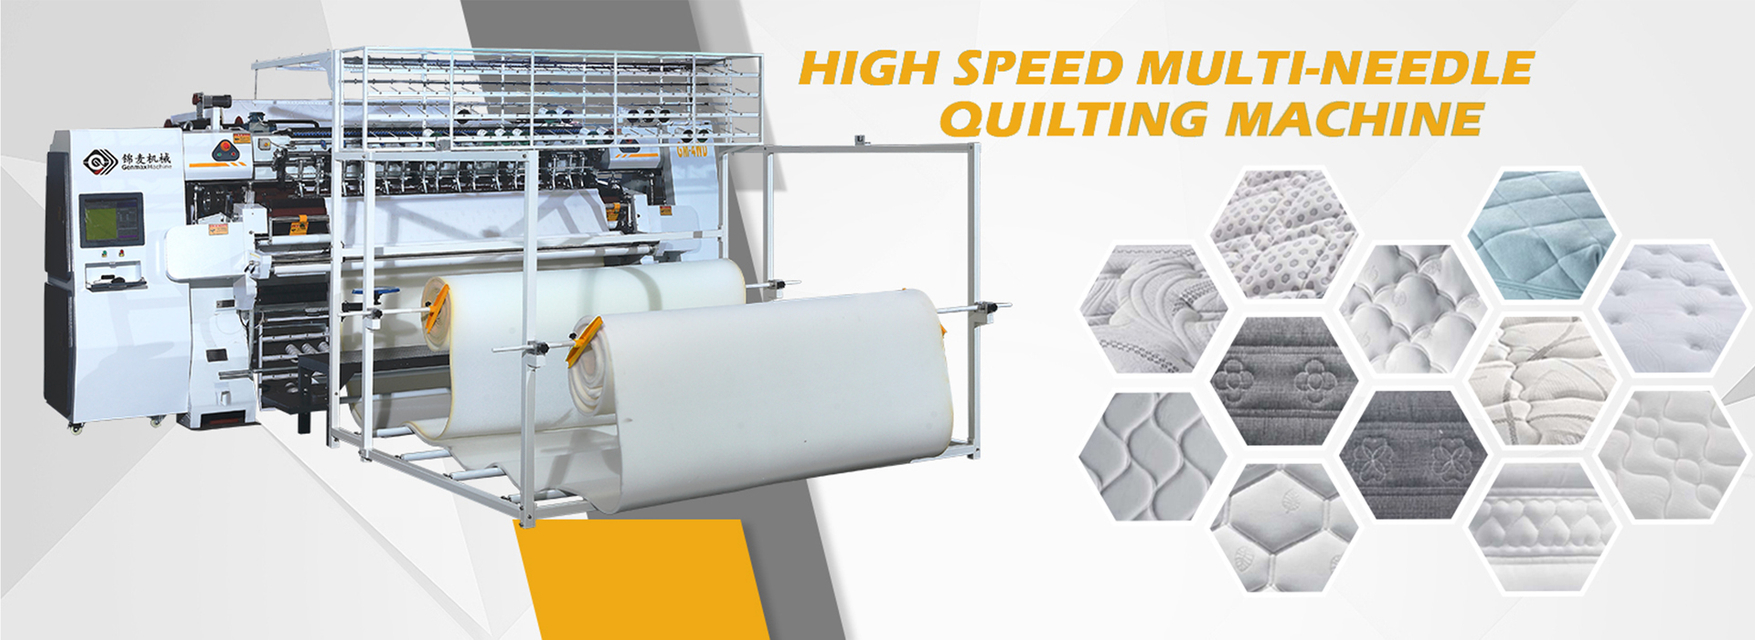 GENMAX Quilting Machine